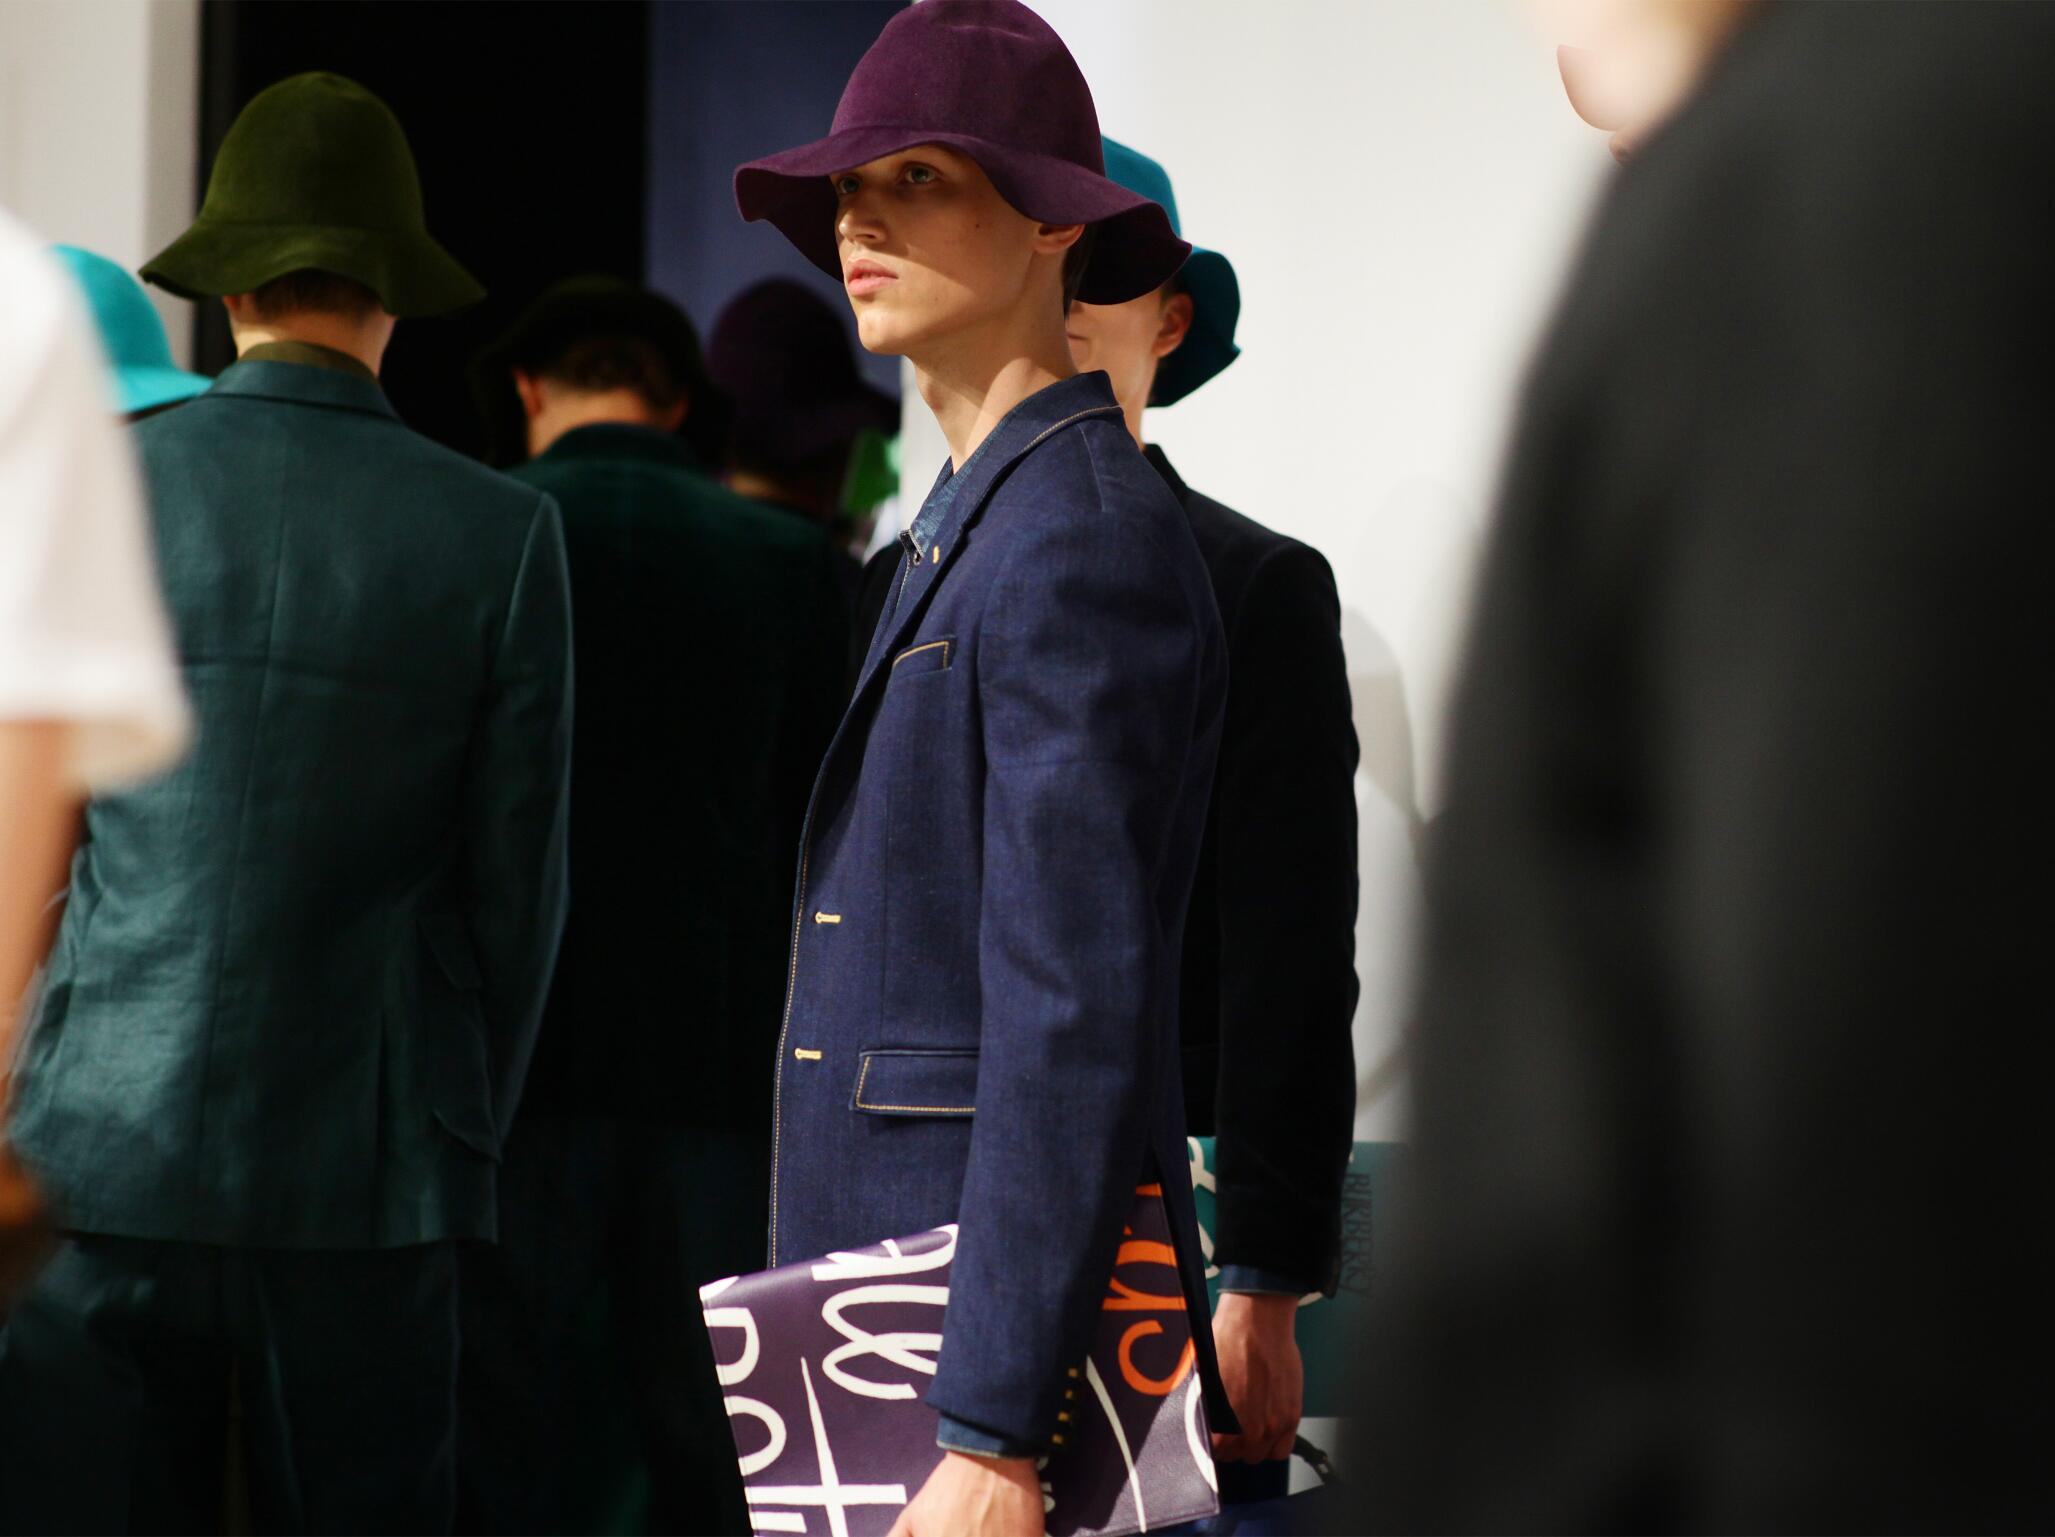 Backstage Burberry Prorsum Man Model